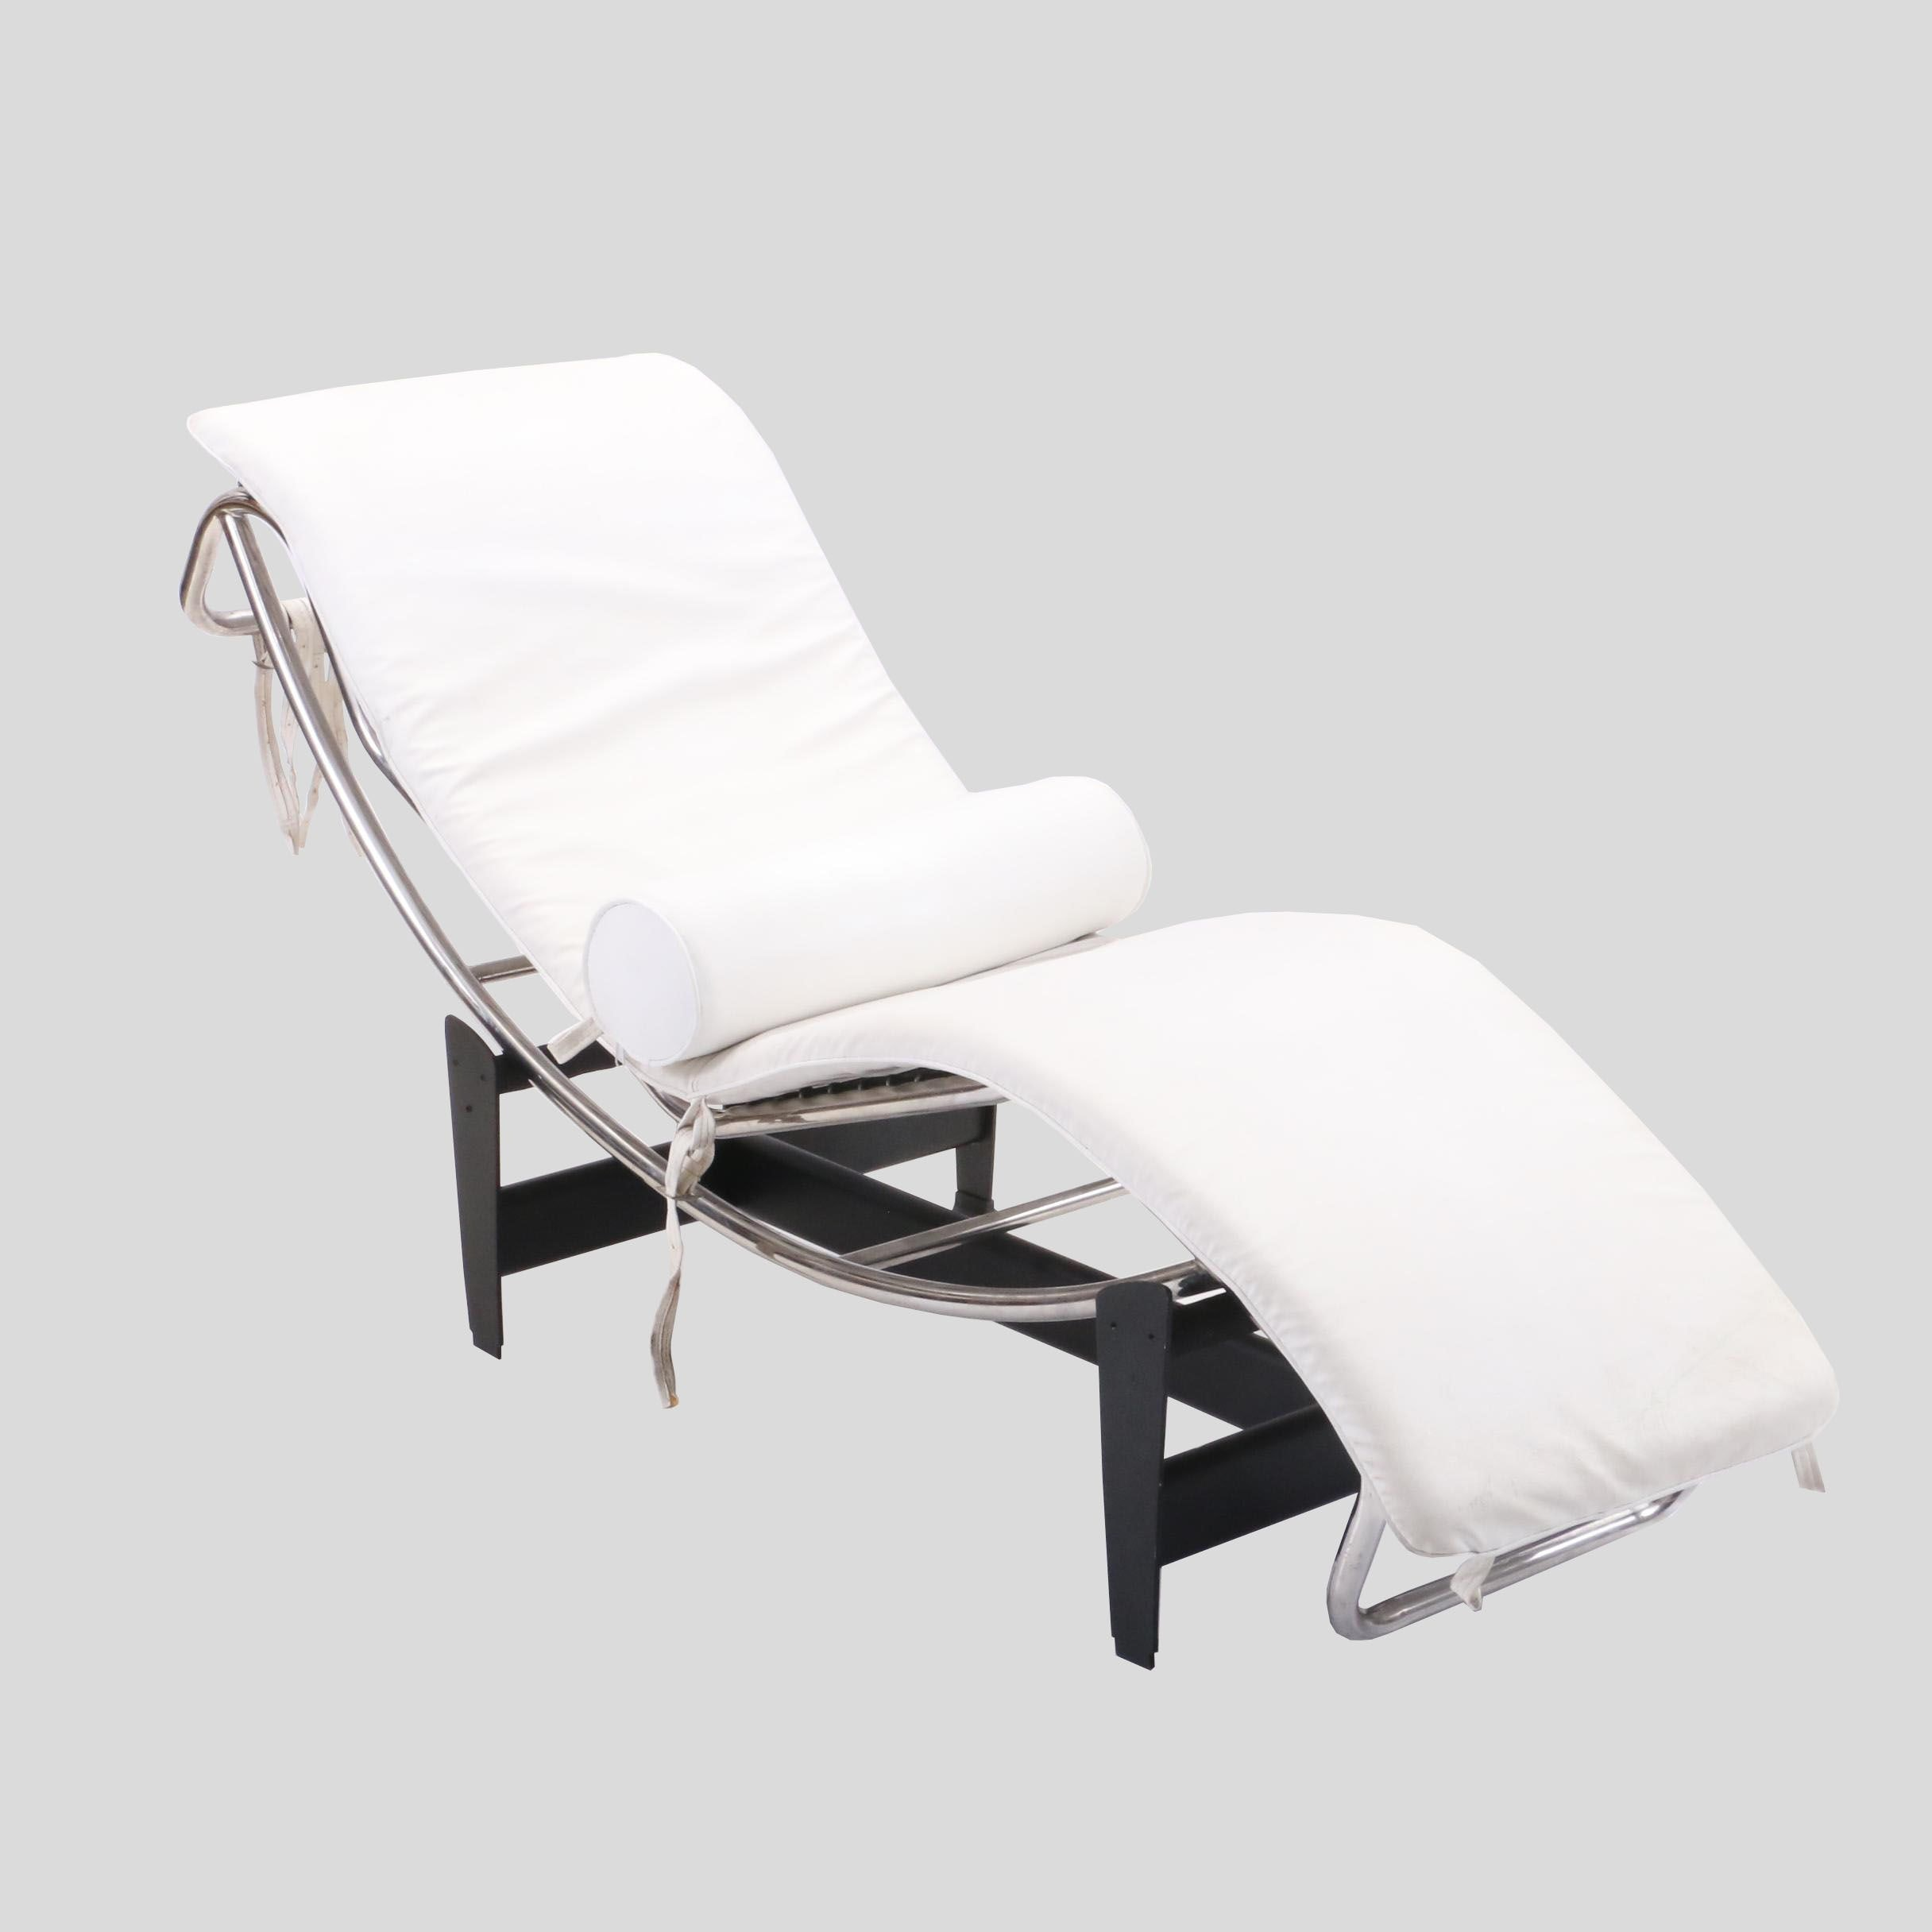 Le Corbusier Style Chaise Lounge Chair, Mid 20th Century ...